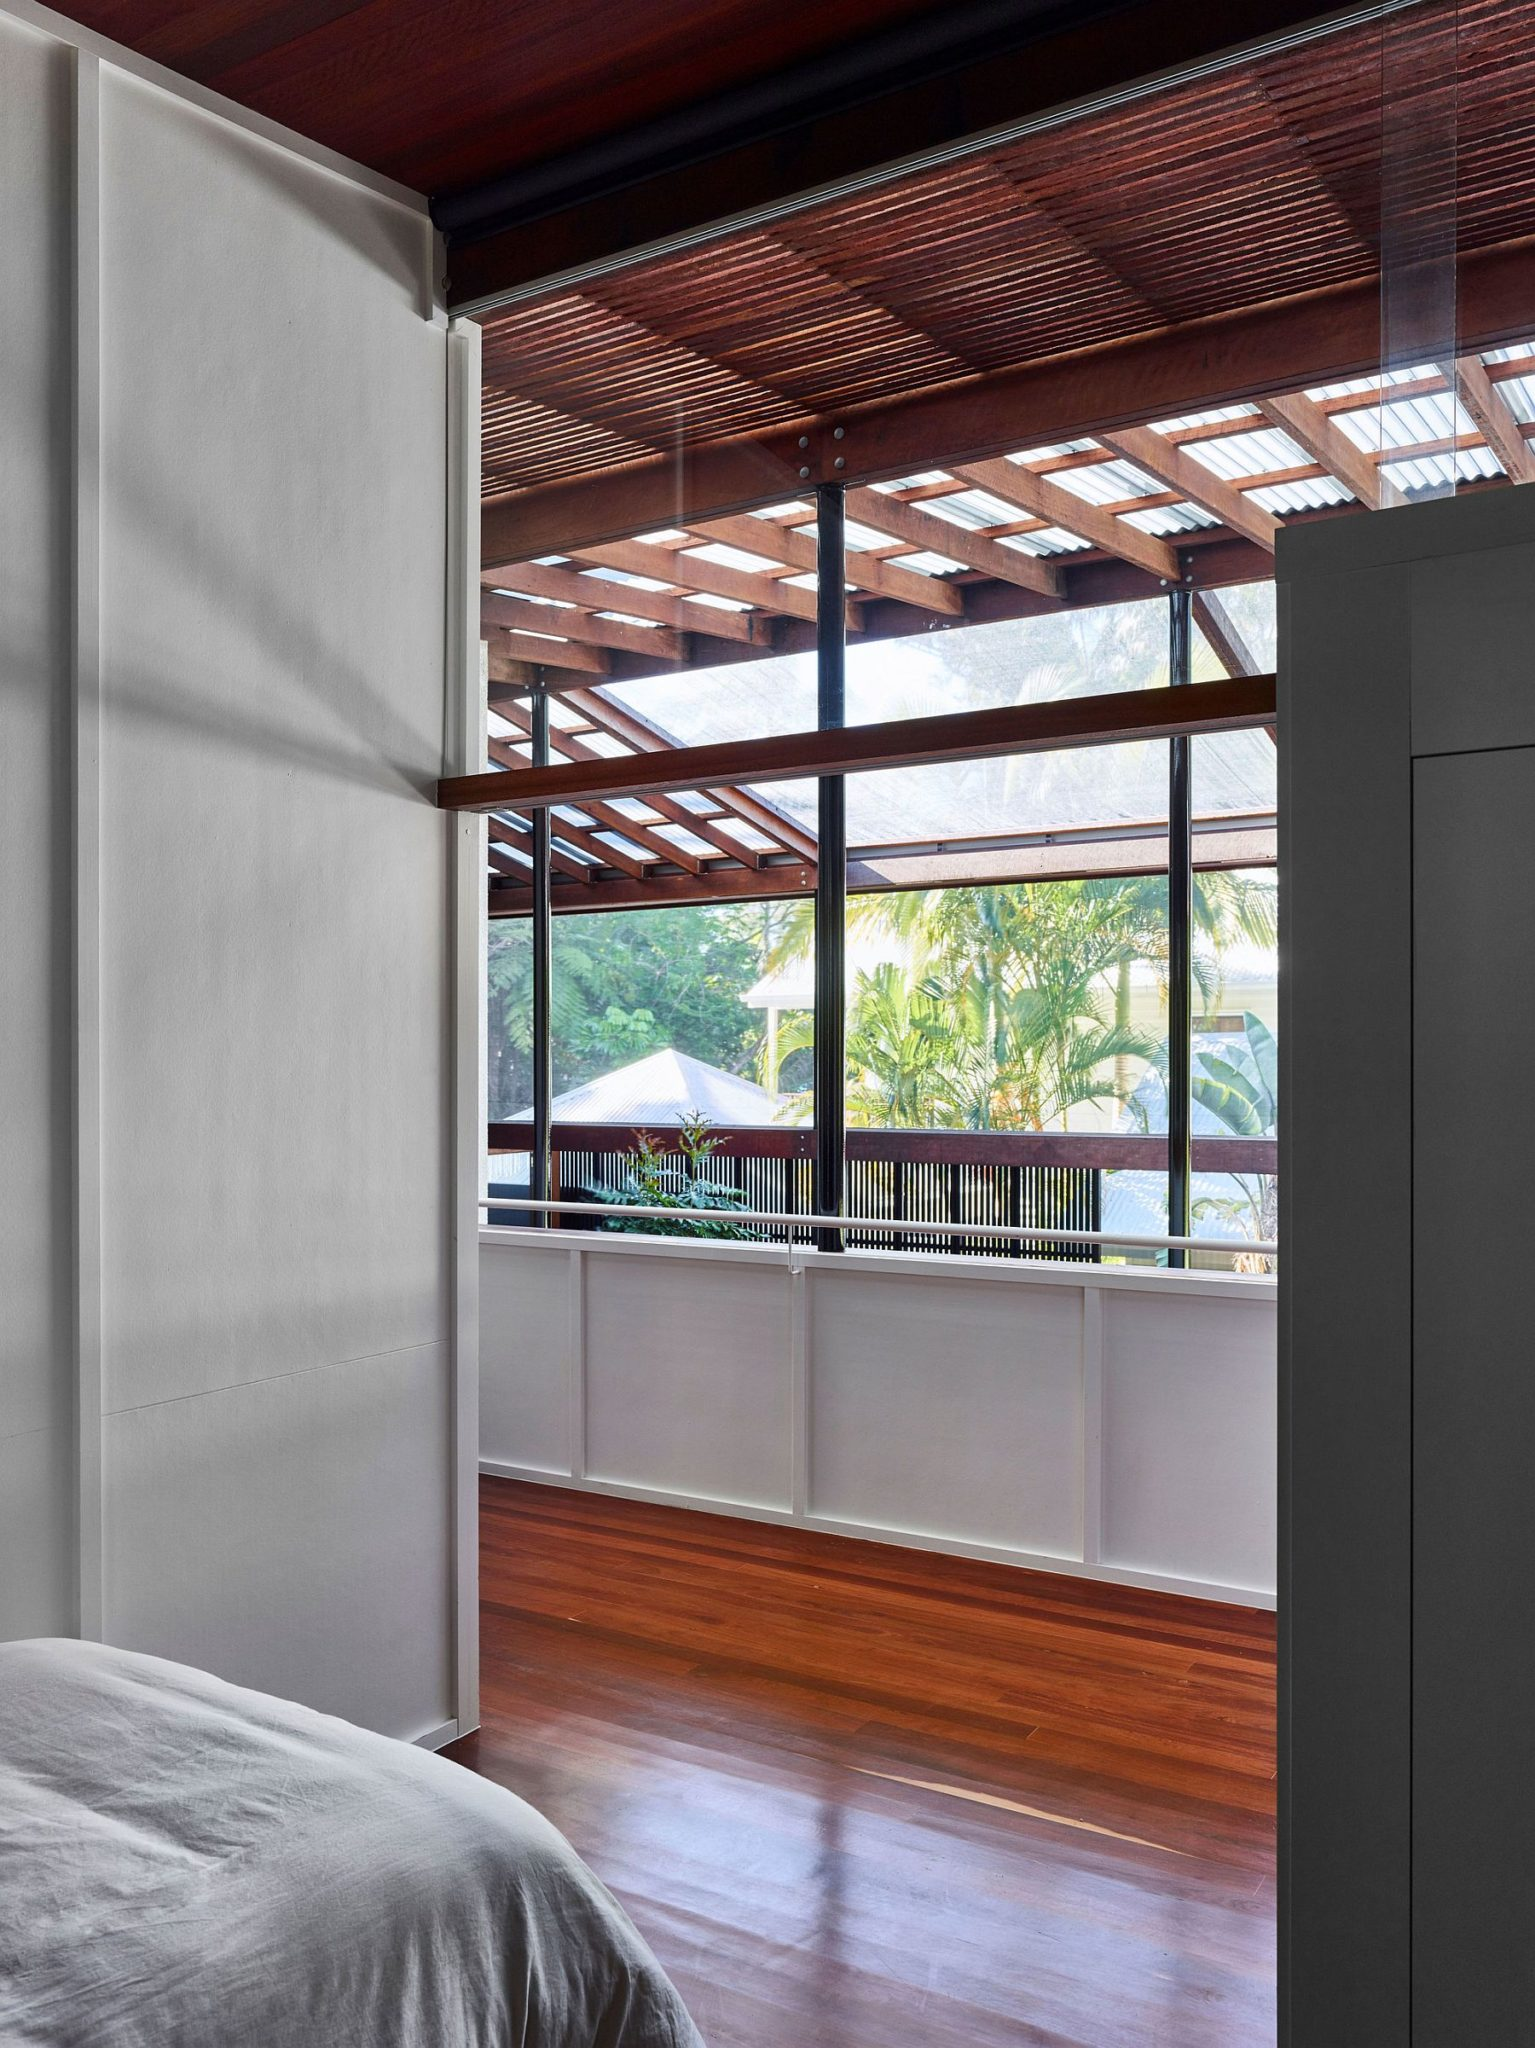 Wooden and concrete verandah style holiday home near a rainforest